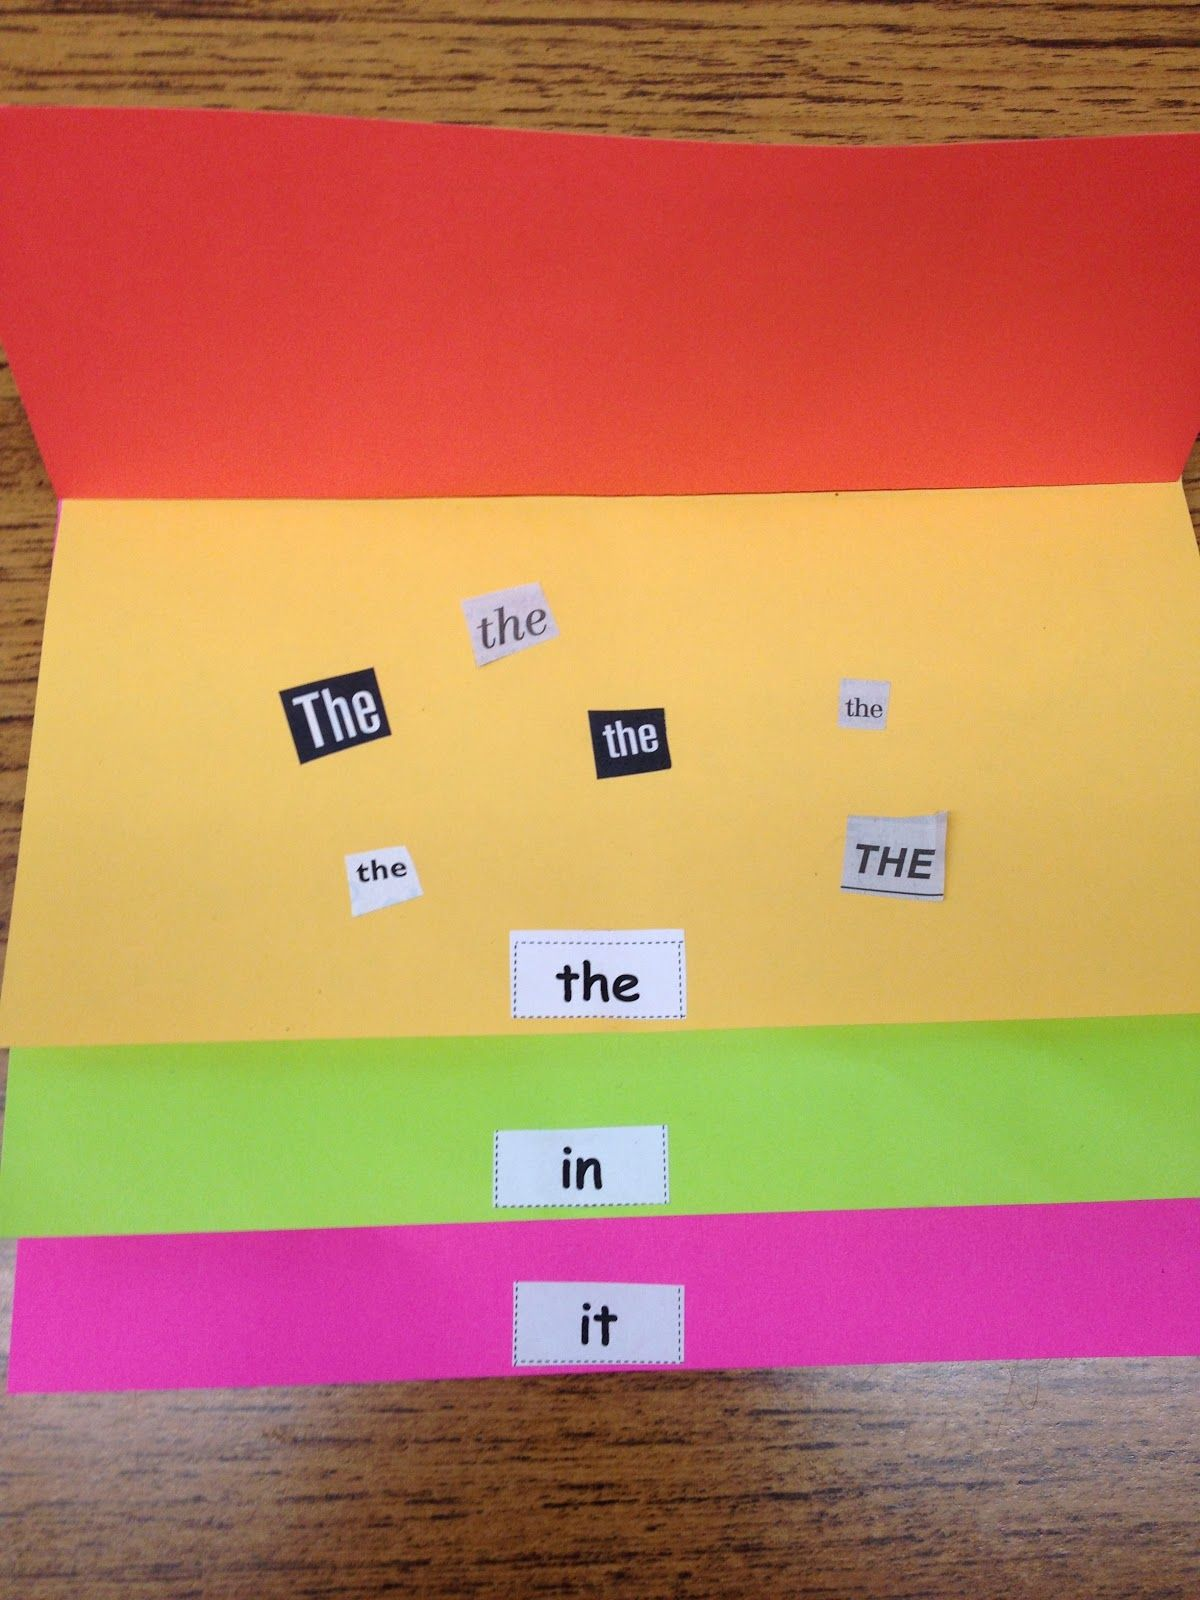 Sight Word Flip Books Use Magazines And Newspapers And Go On A Hunt For Words